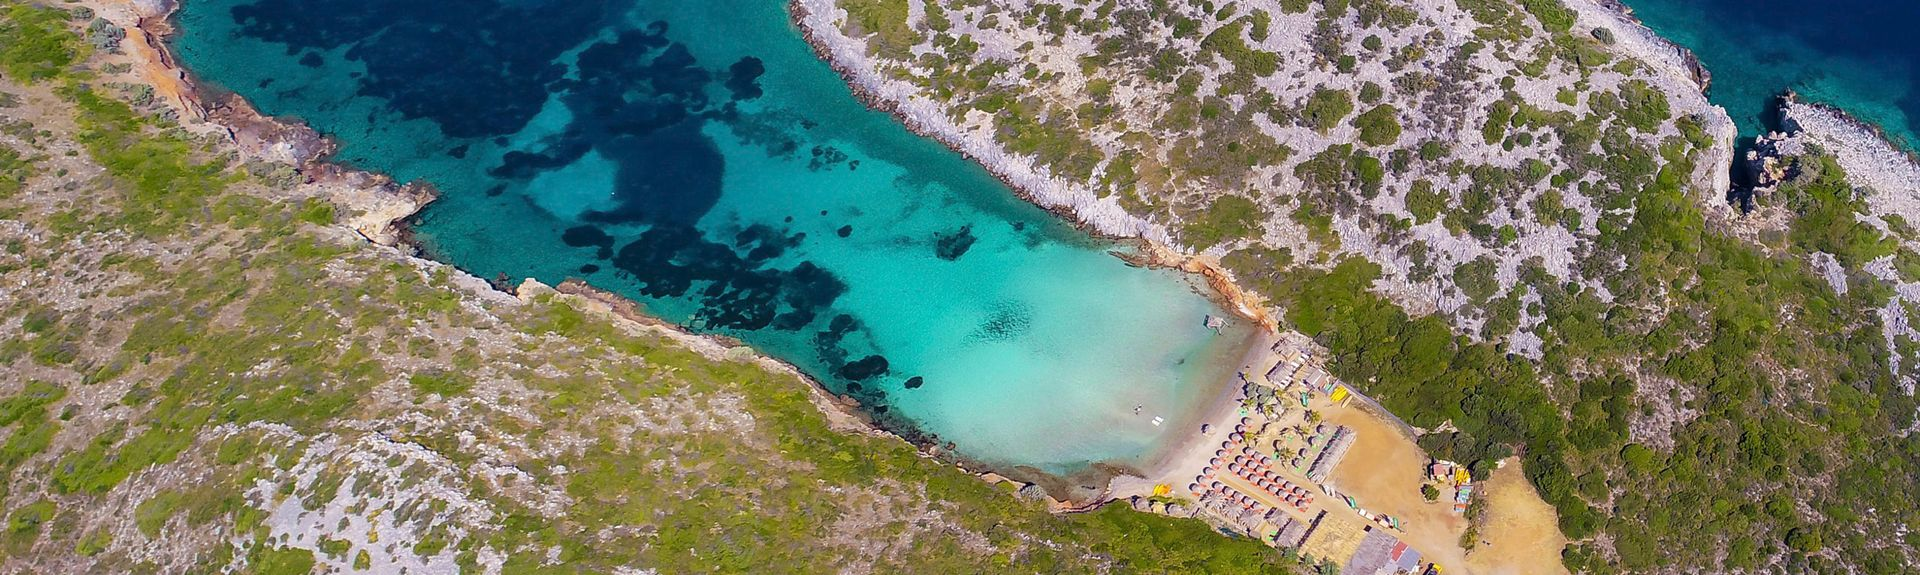 Pythagorio, Samos, North Aegean Islands, Greece